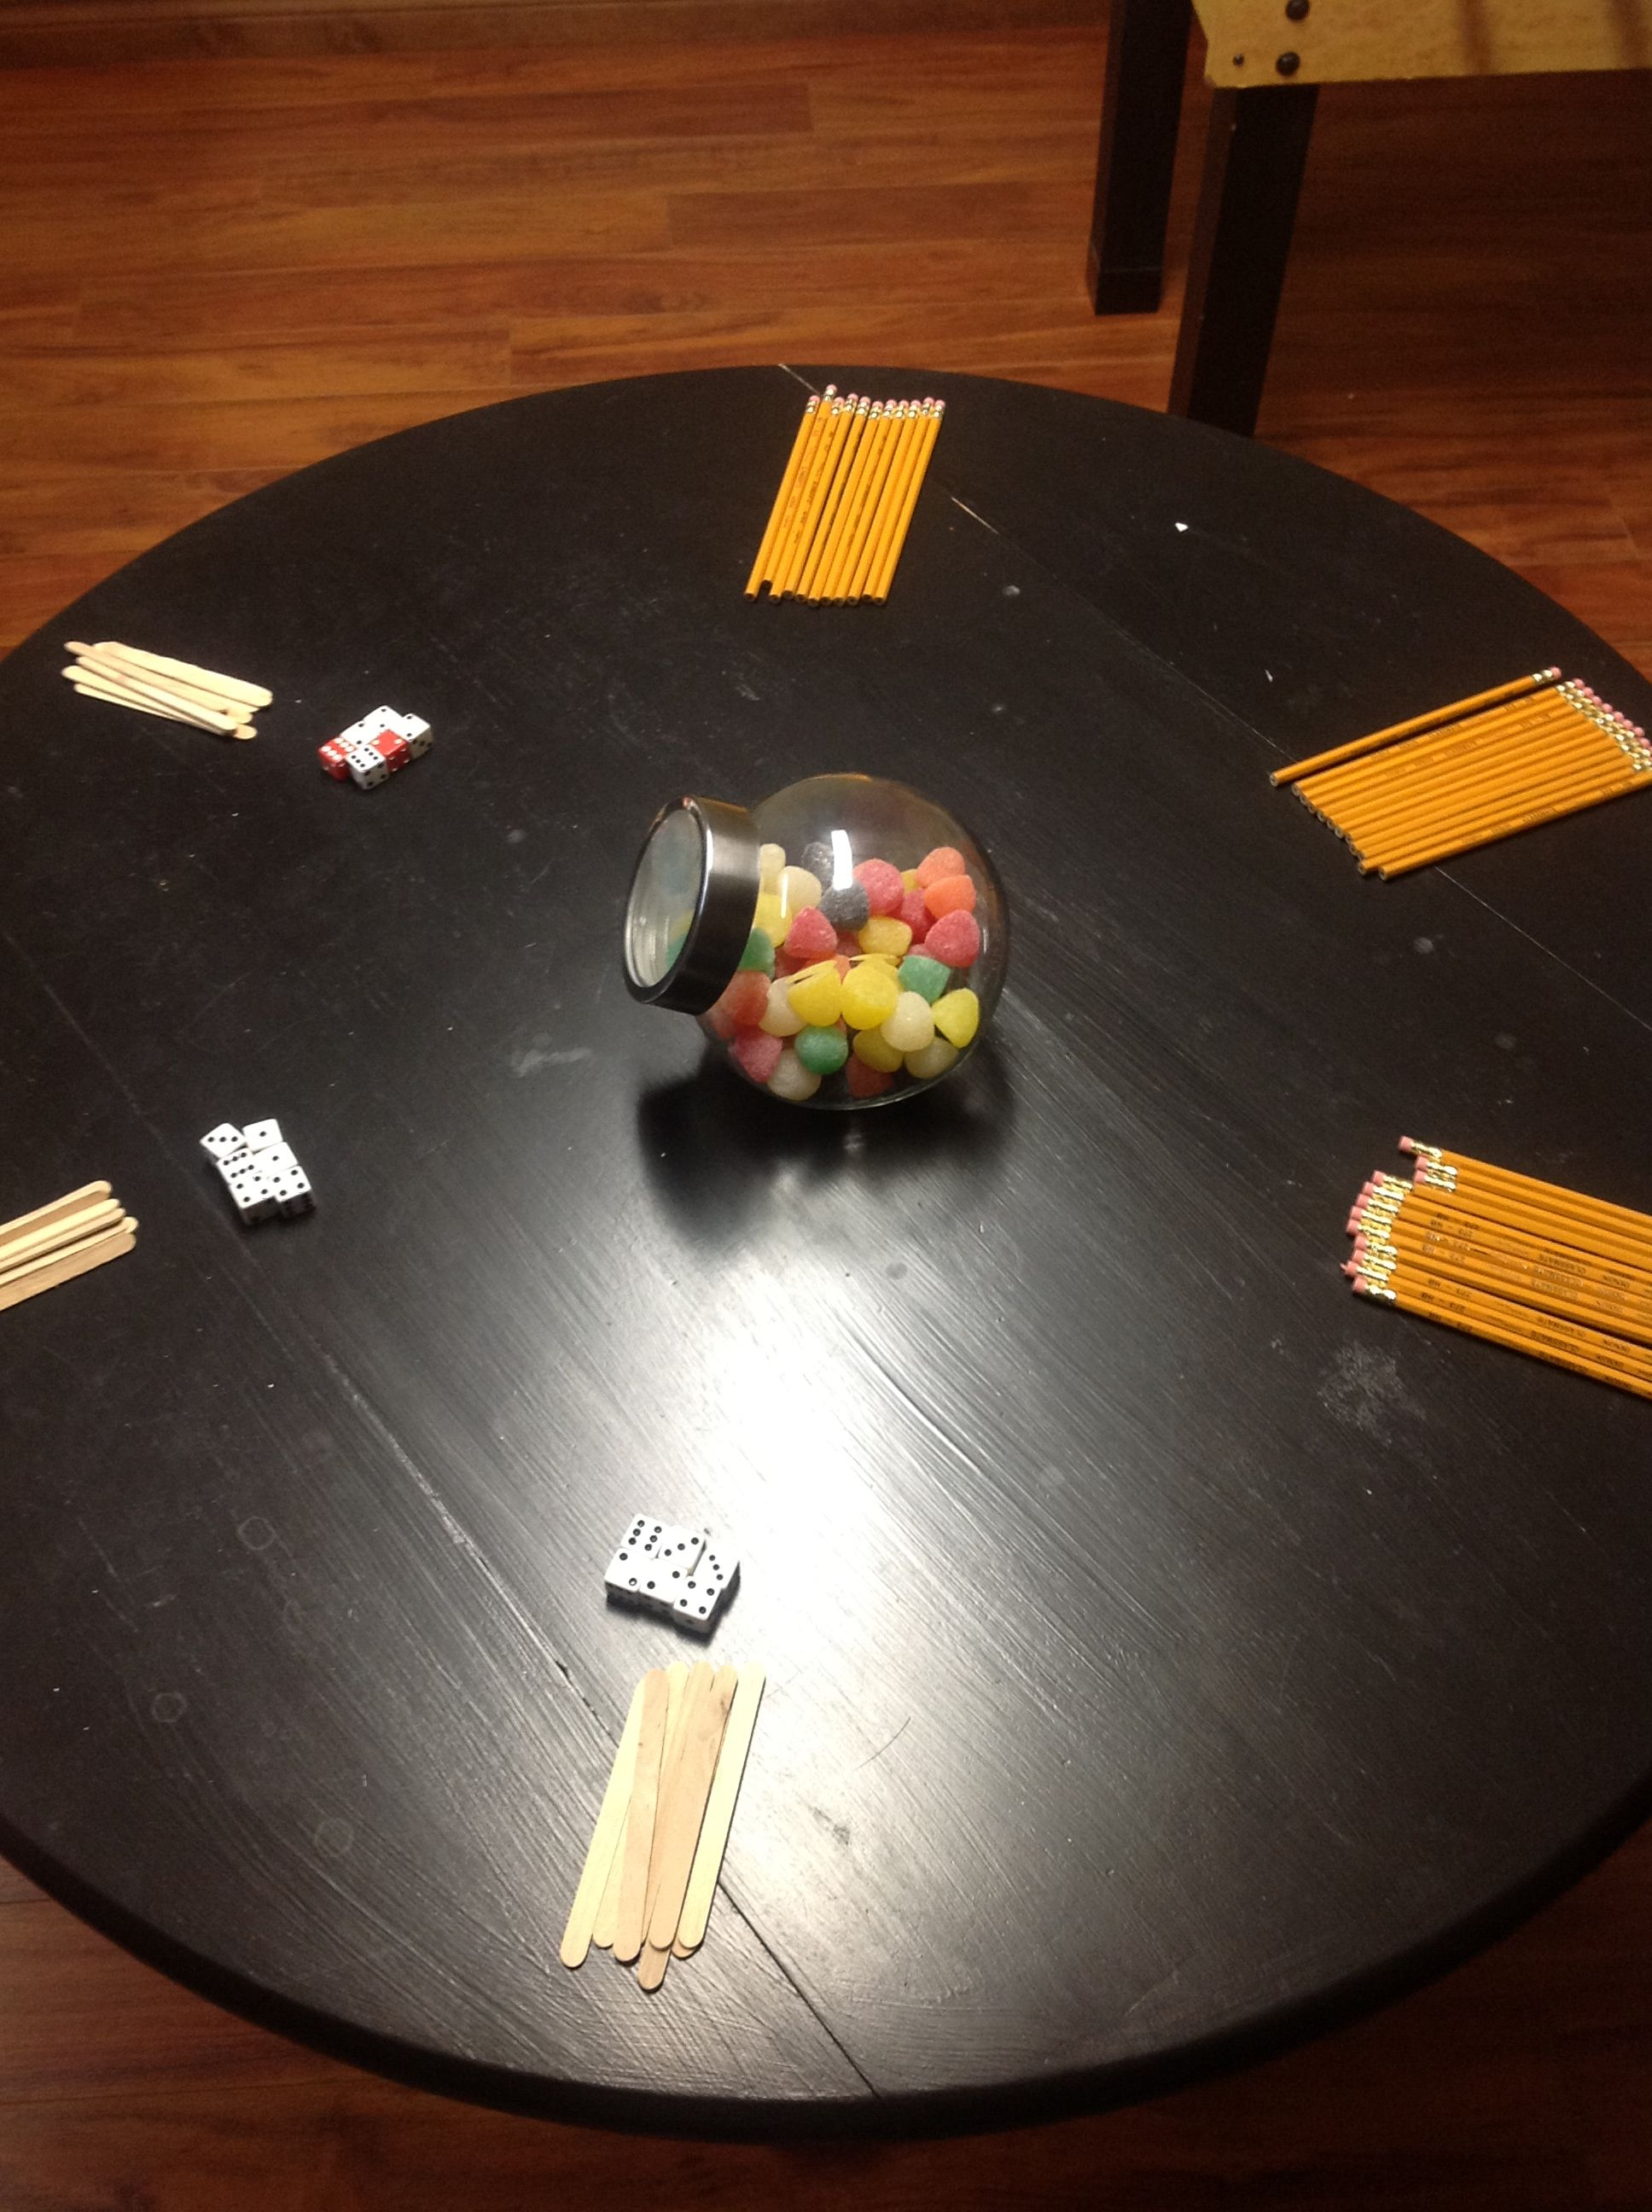 Balancing dice and catching pencils were another two games